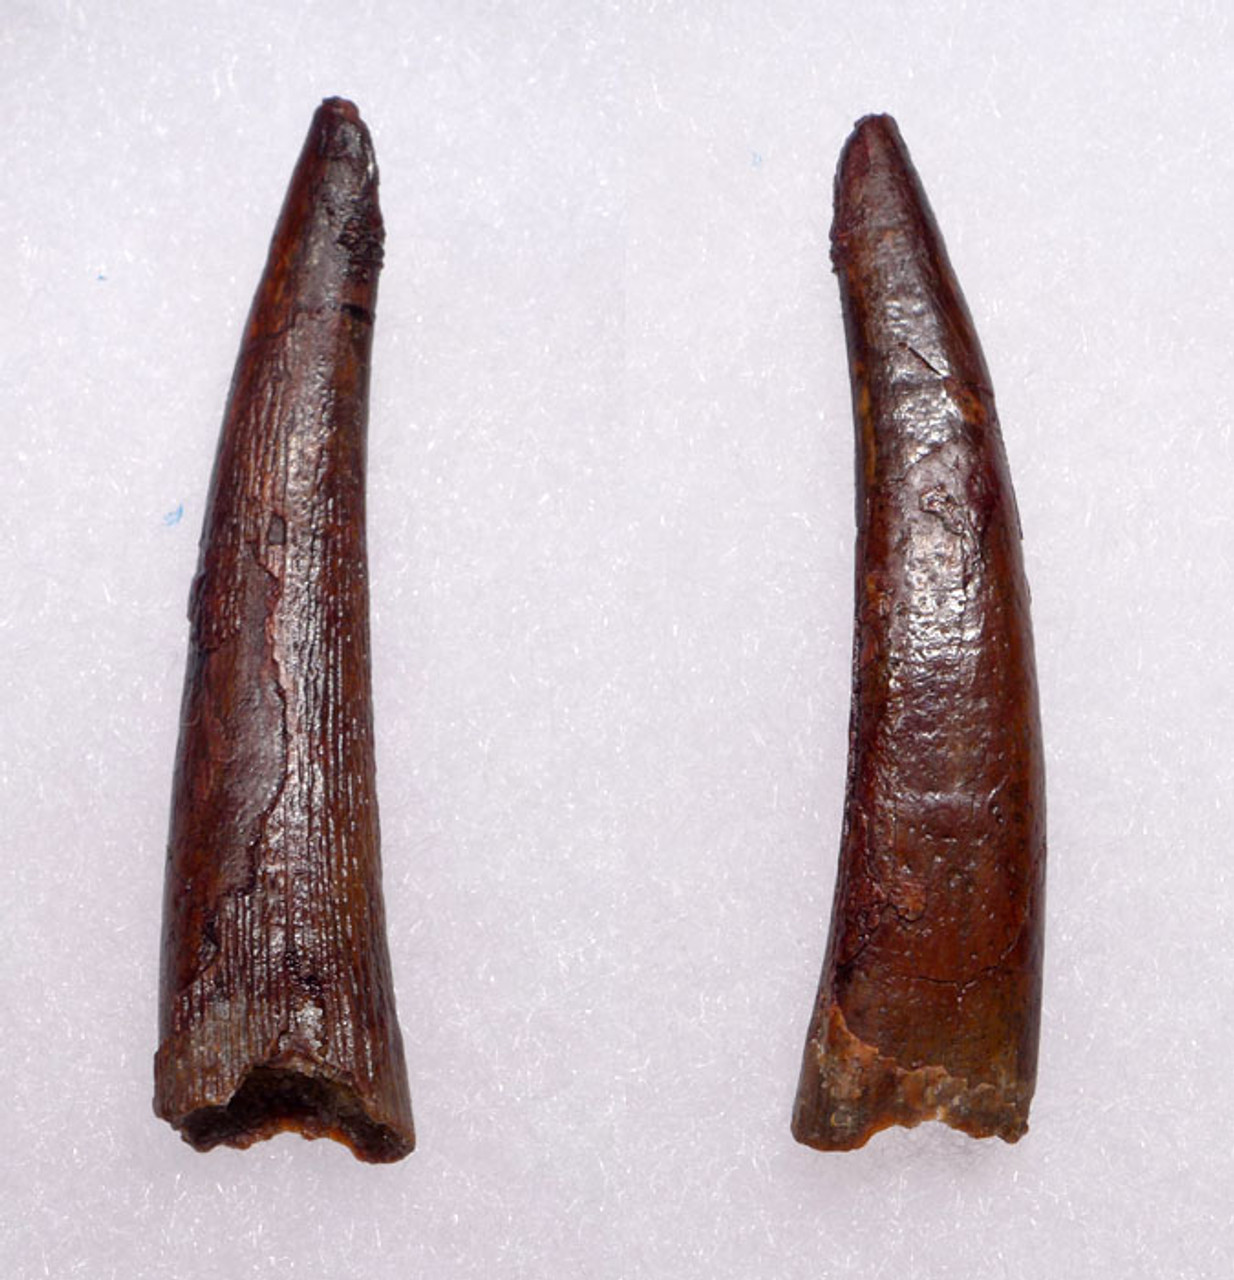 DT4-056 - LARGE 1.85 INCH CRETACEOUS PTEROSAUR PTERODACTYL FOSSIL TOOTH